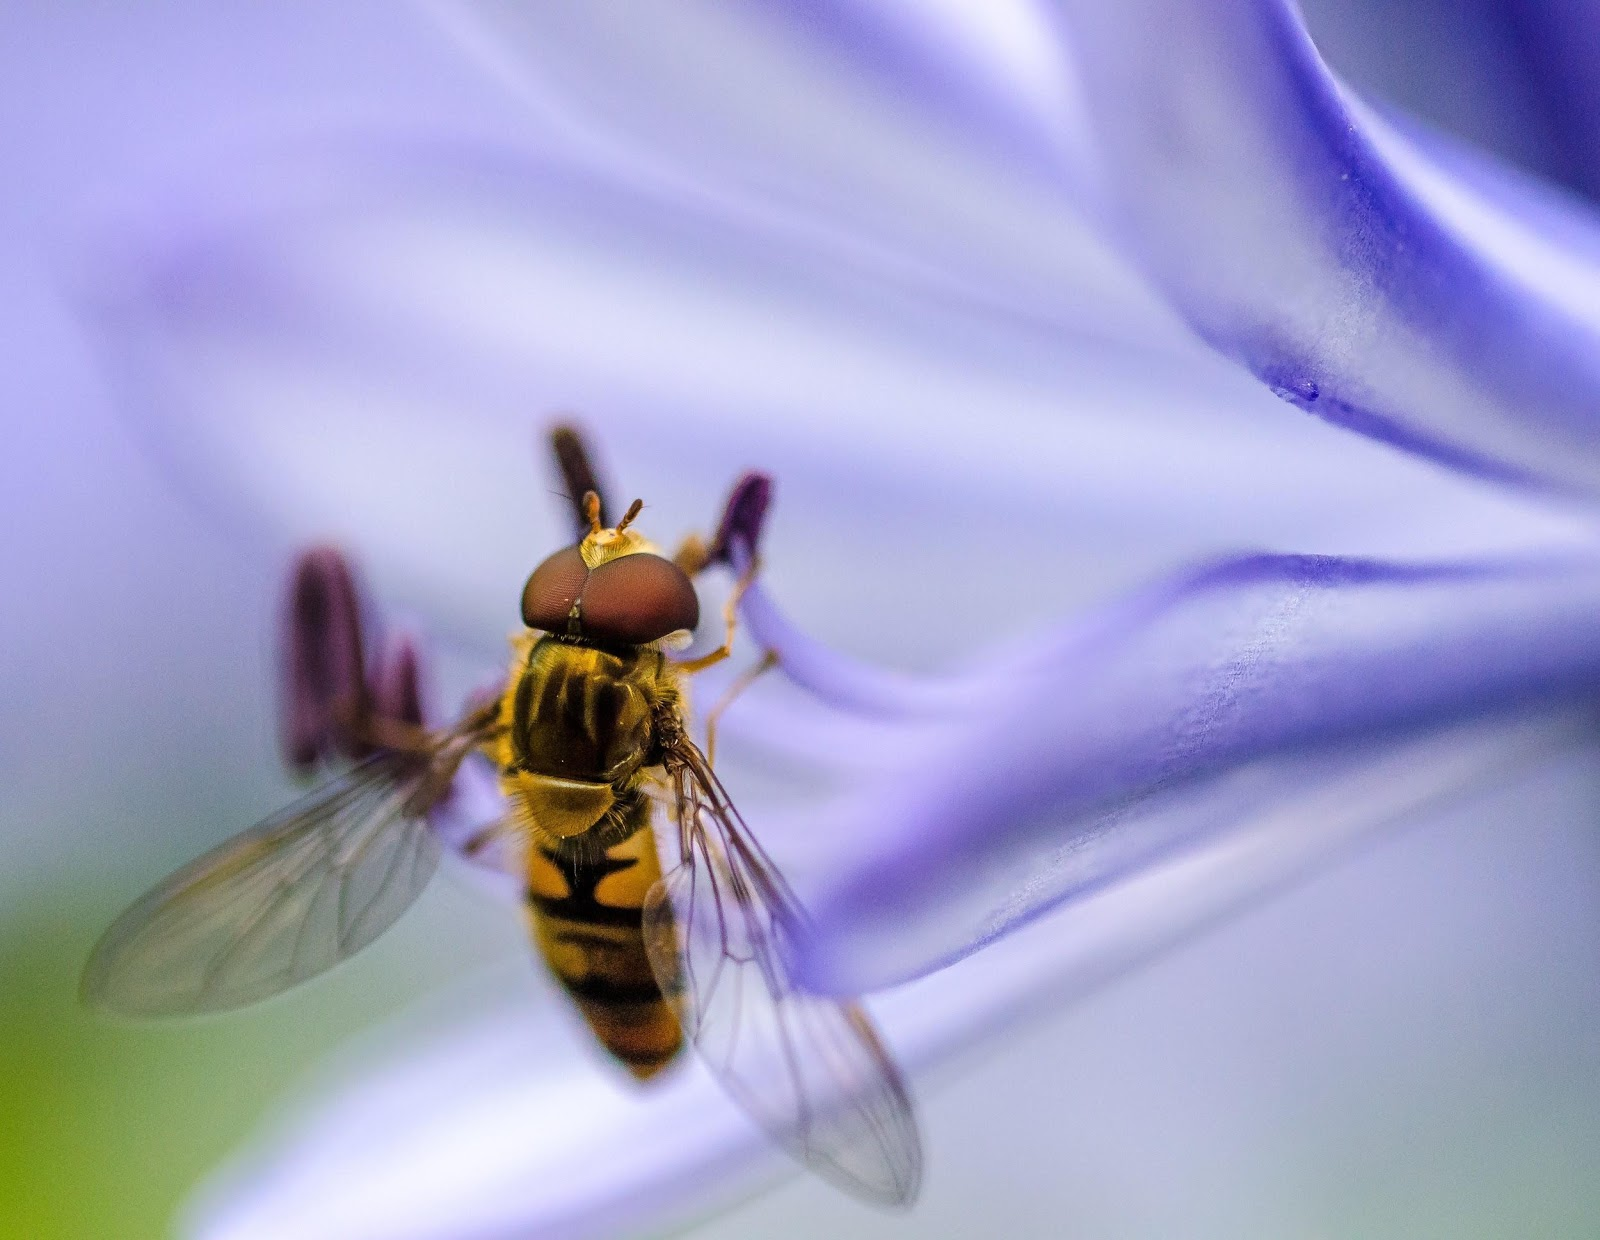 Bees are foundational to sustainable life on earth